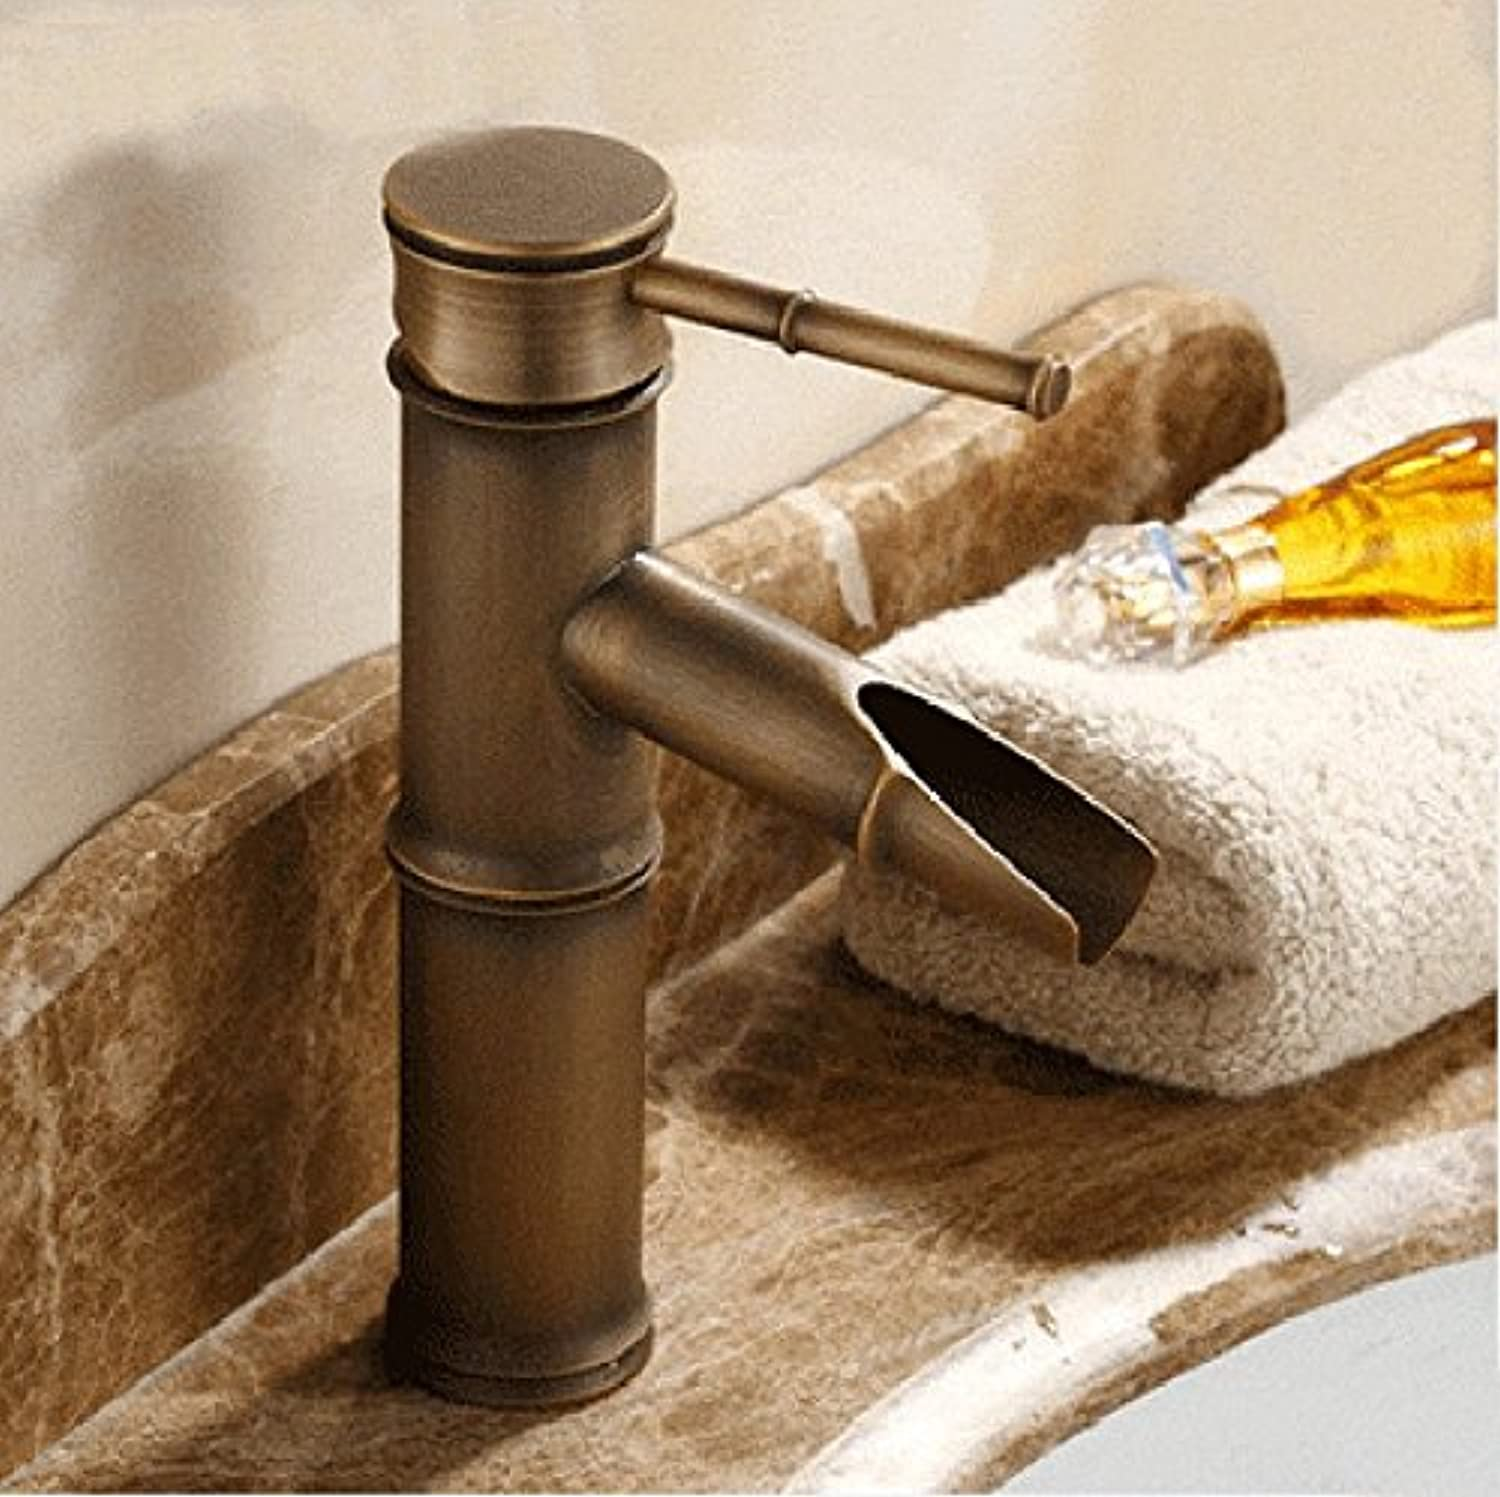 Hlluya Professional Sink Mixer Tap Kitchen Faucet The bathrooms, hot and cold water, washing your face,